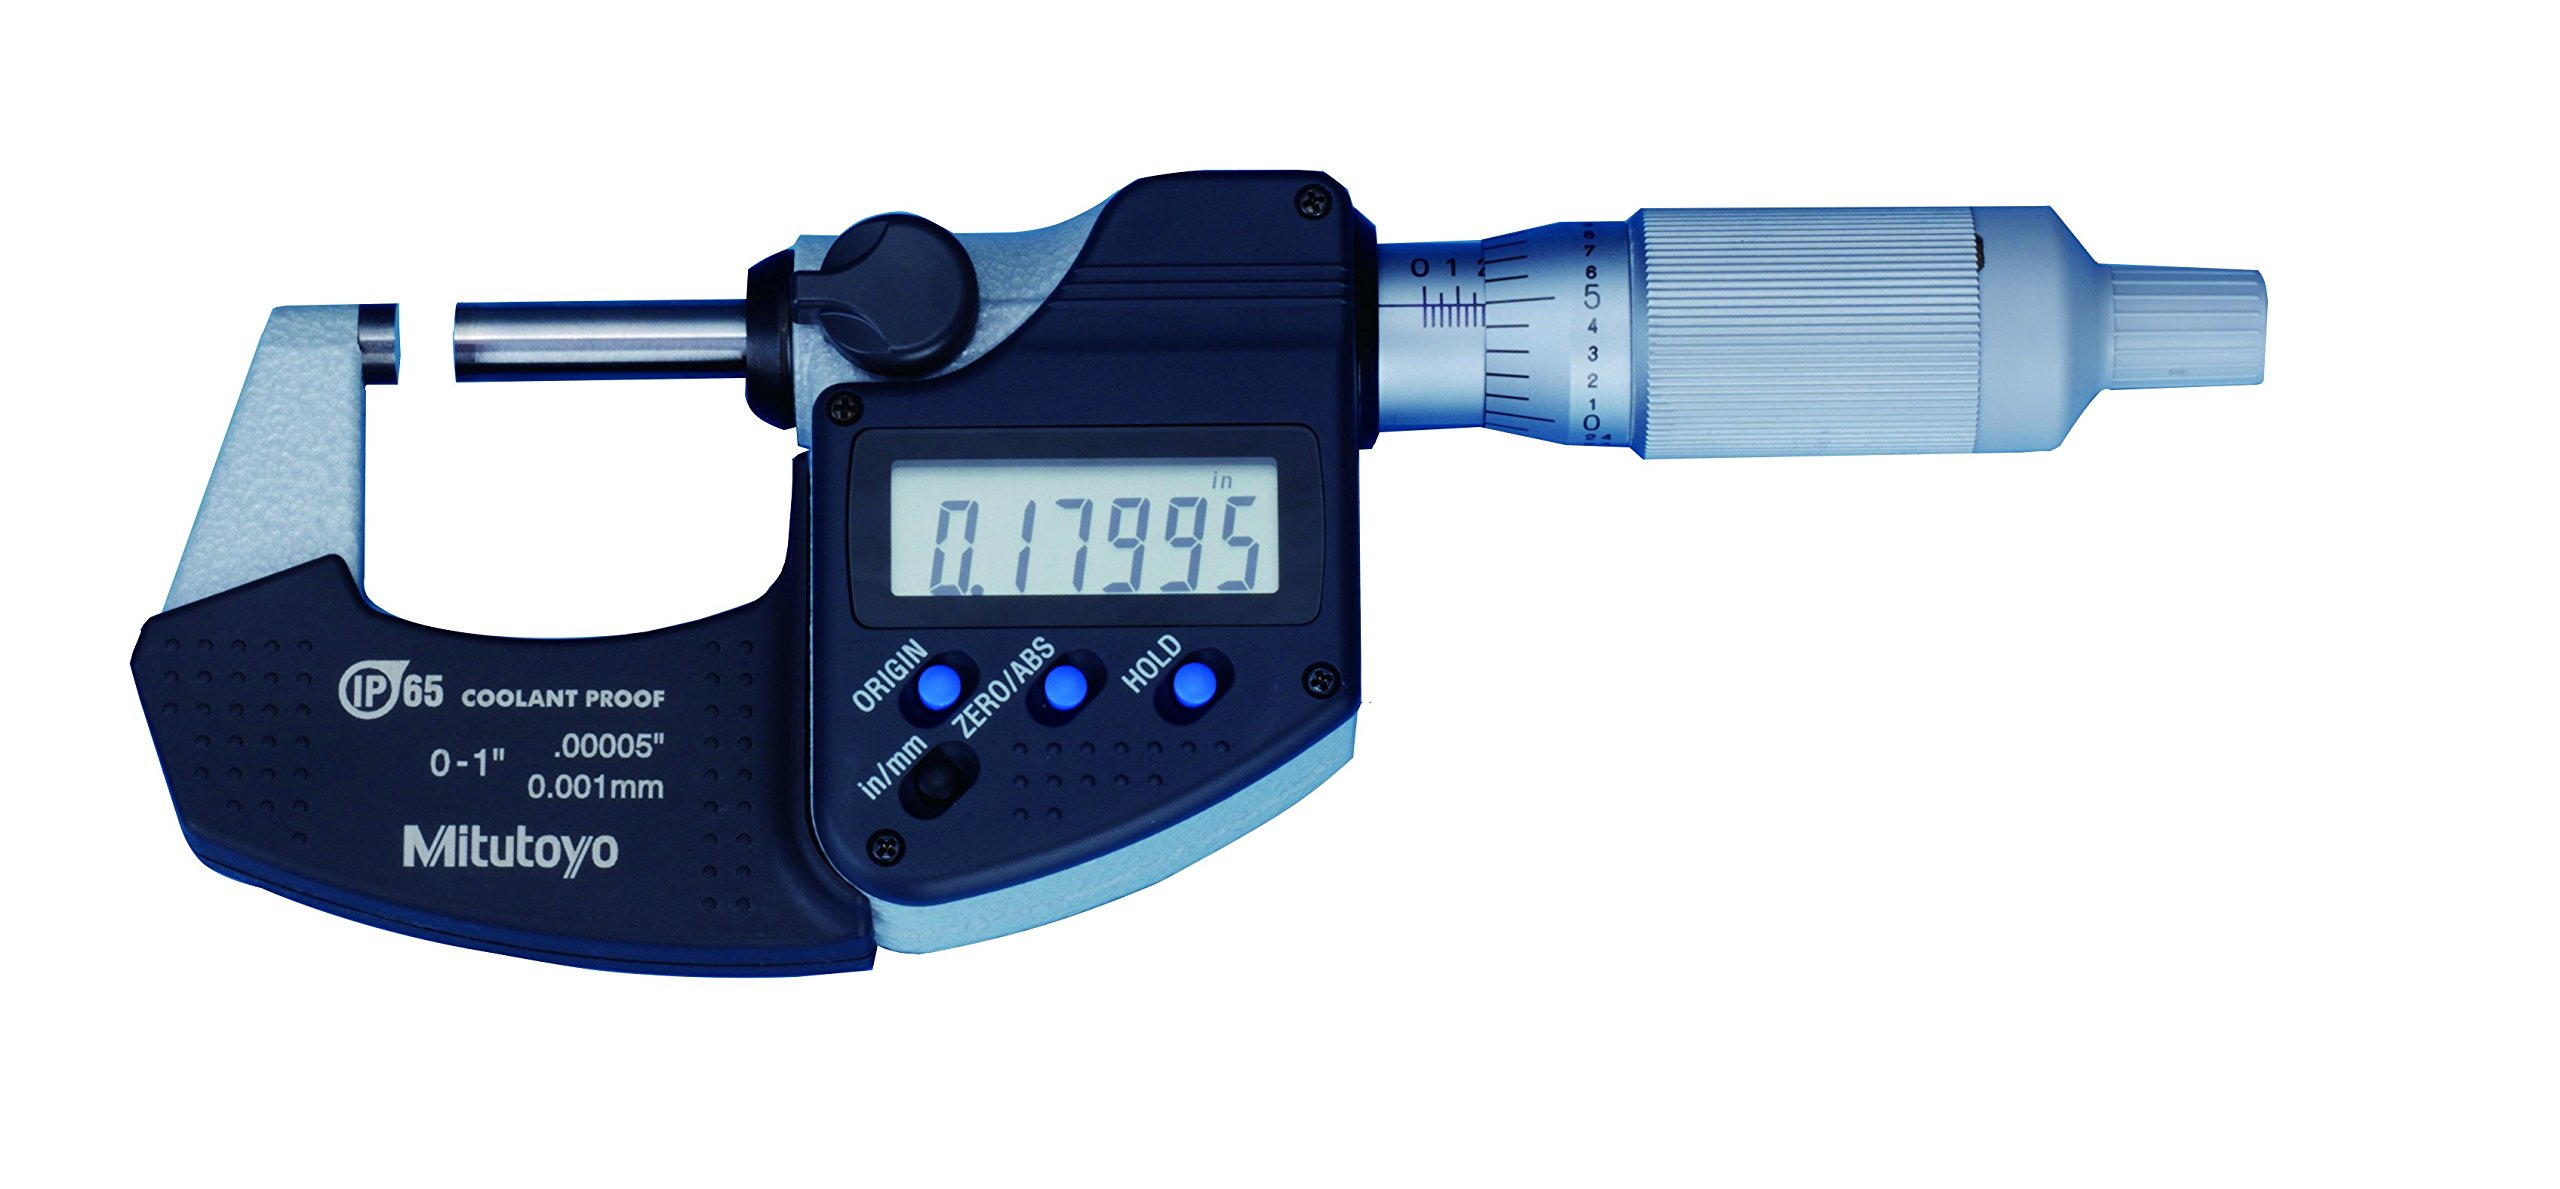 "Mitutoyo 293-349-30 Digital Micrometer, 0 to 1""/25.4mm Measuring Range, 0-1"" .0001""/0.001mm Resolution, LCD, IP65 Protection"